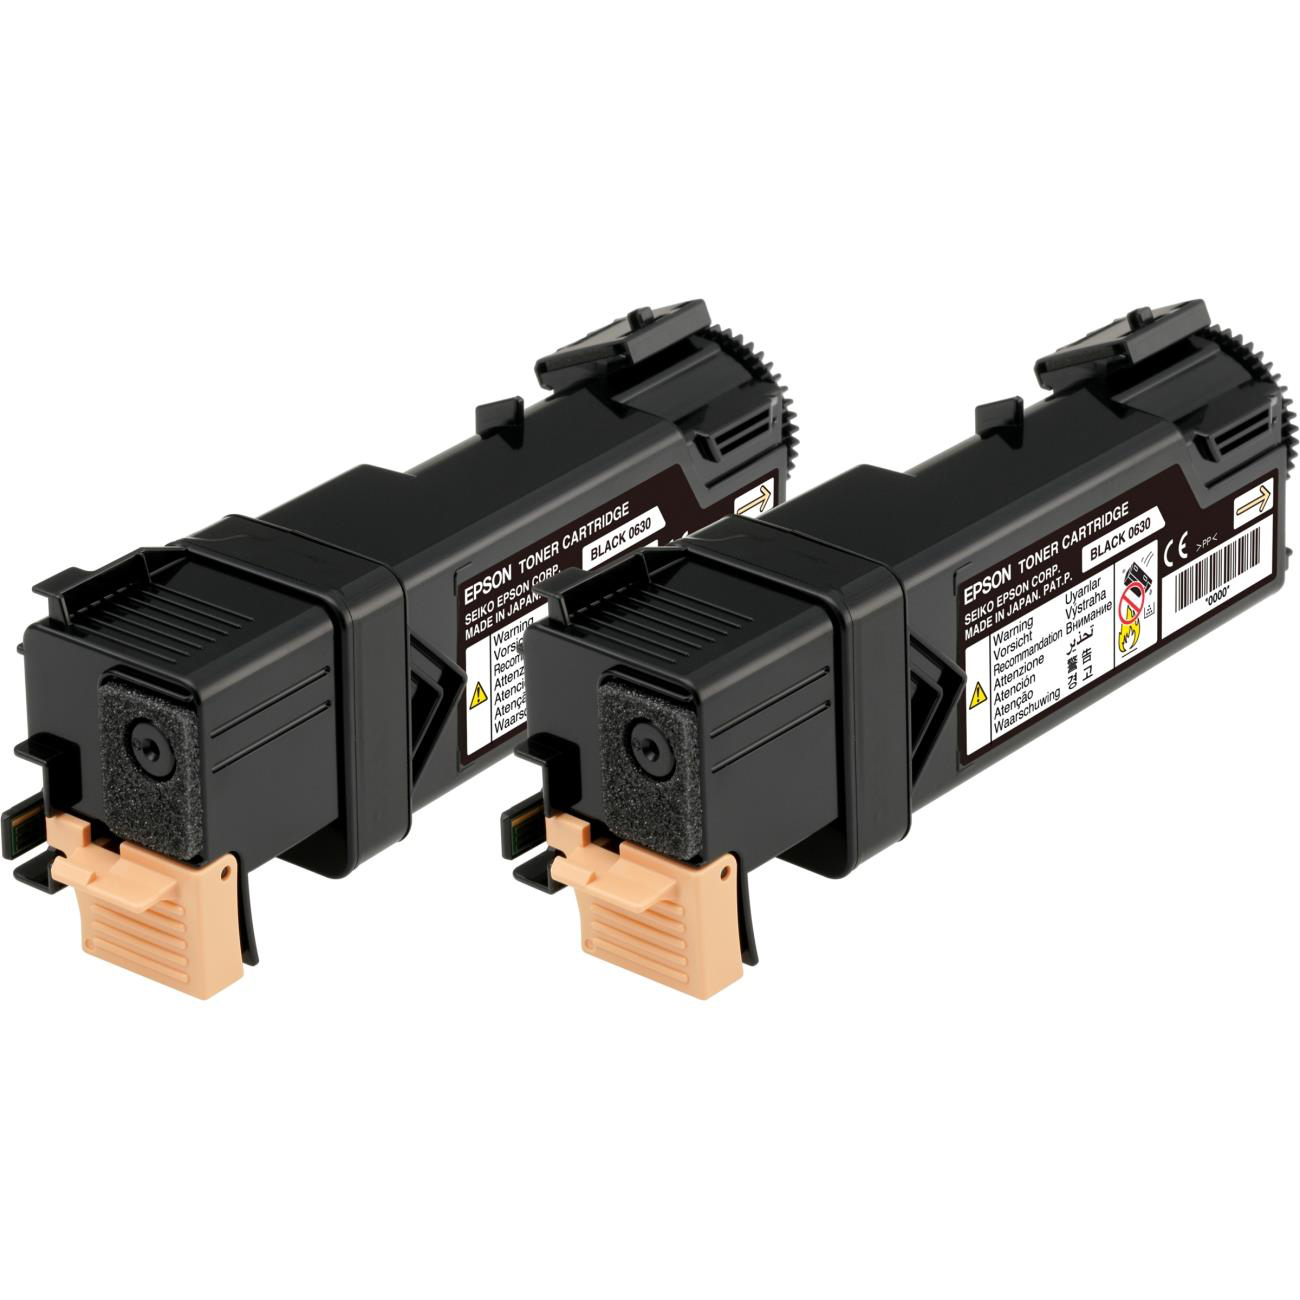 Epson S0506 Laser Toner Cartridges Page Life 3000pp Black Ref C13S050631Pack 2 *3to5 Day Leadtime*